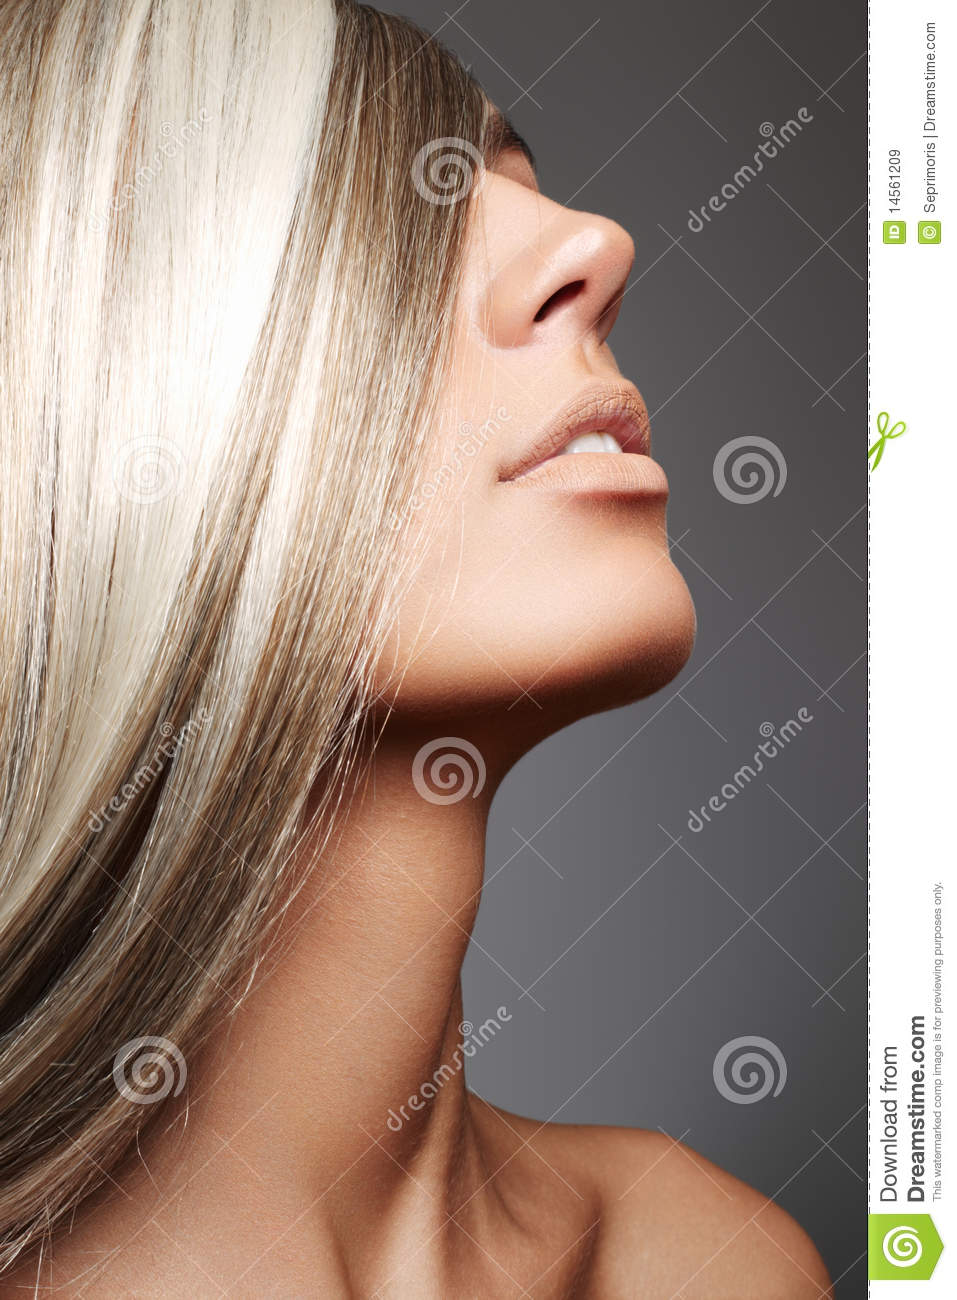 Luxury woman with long blond hair